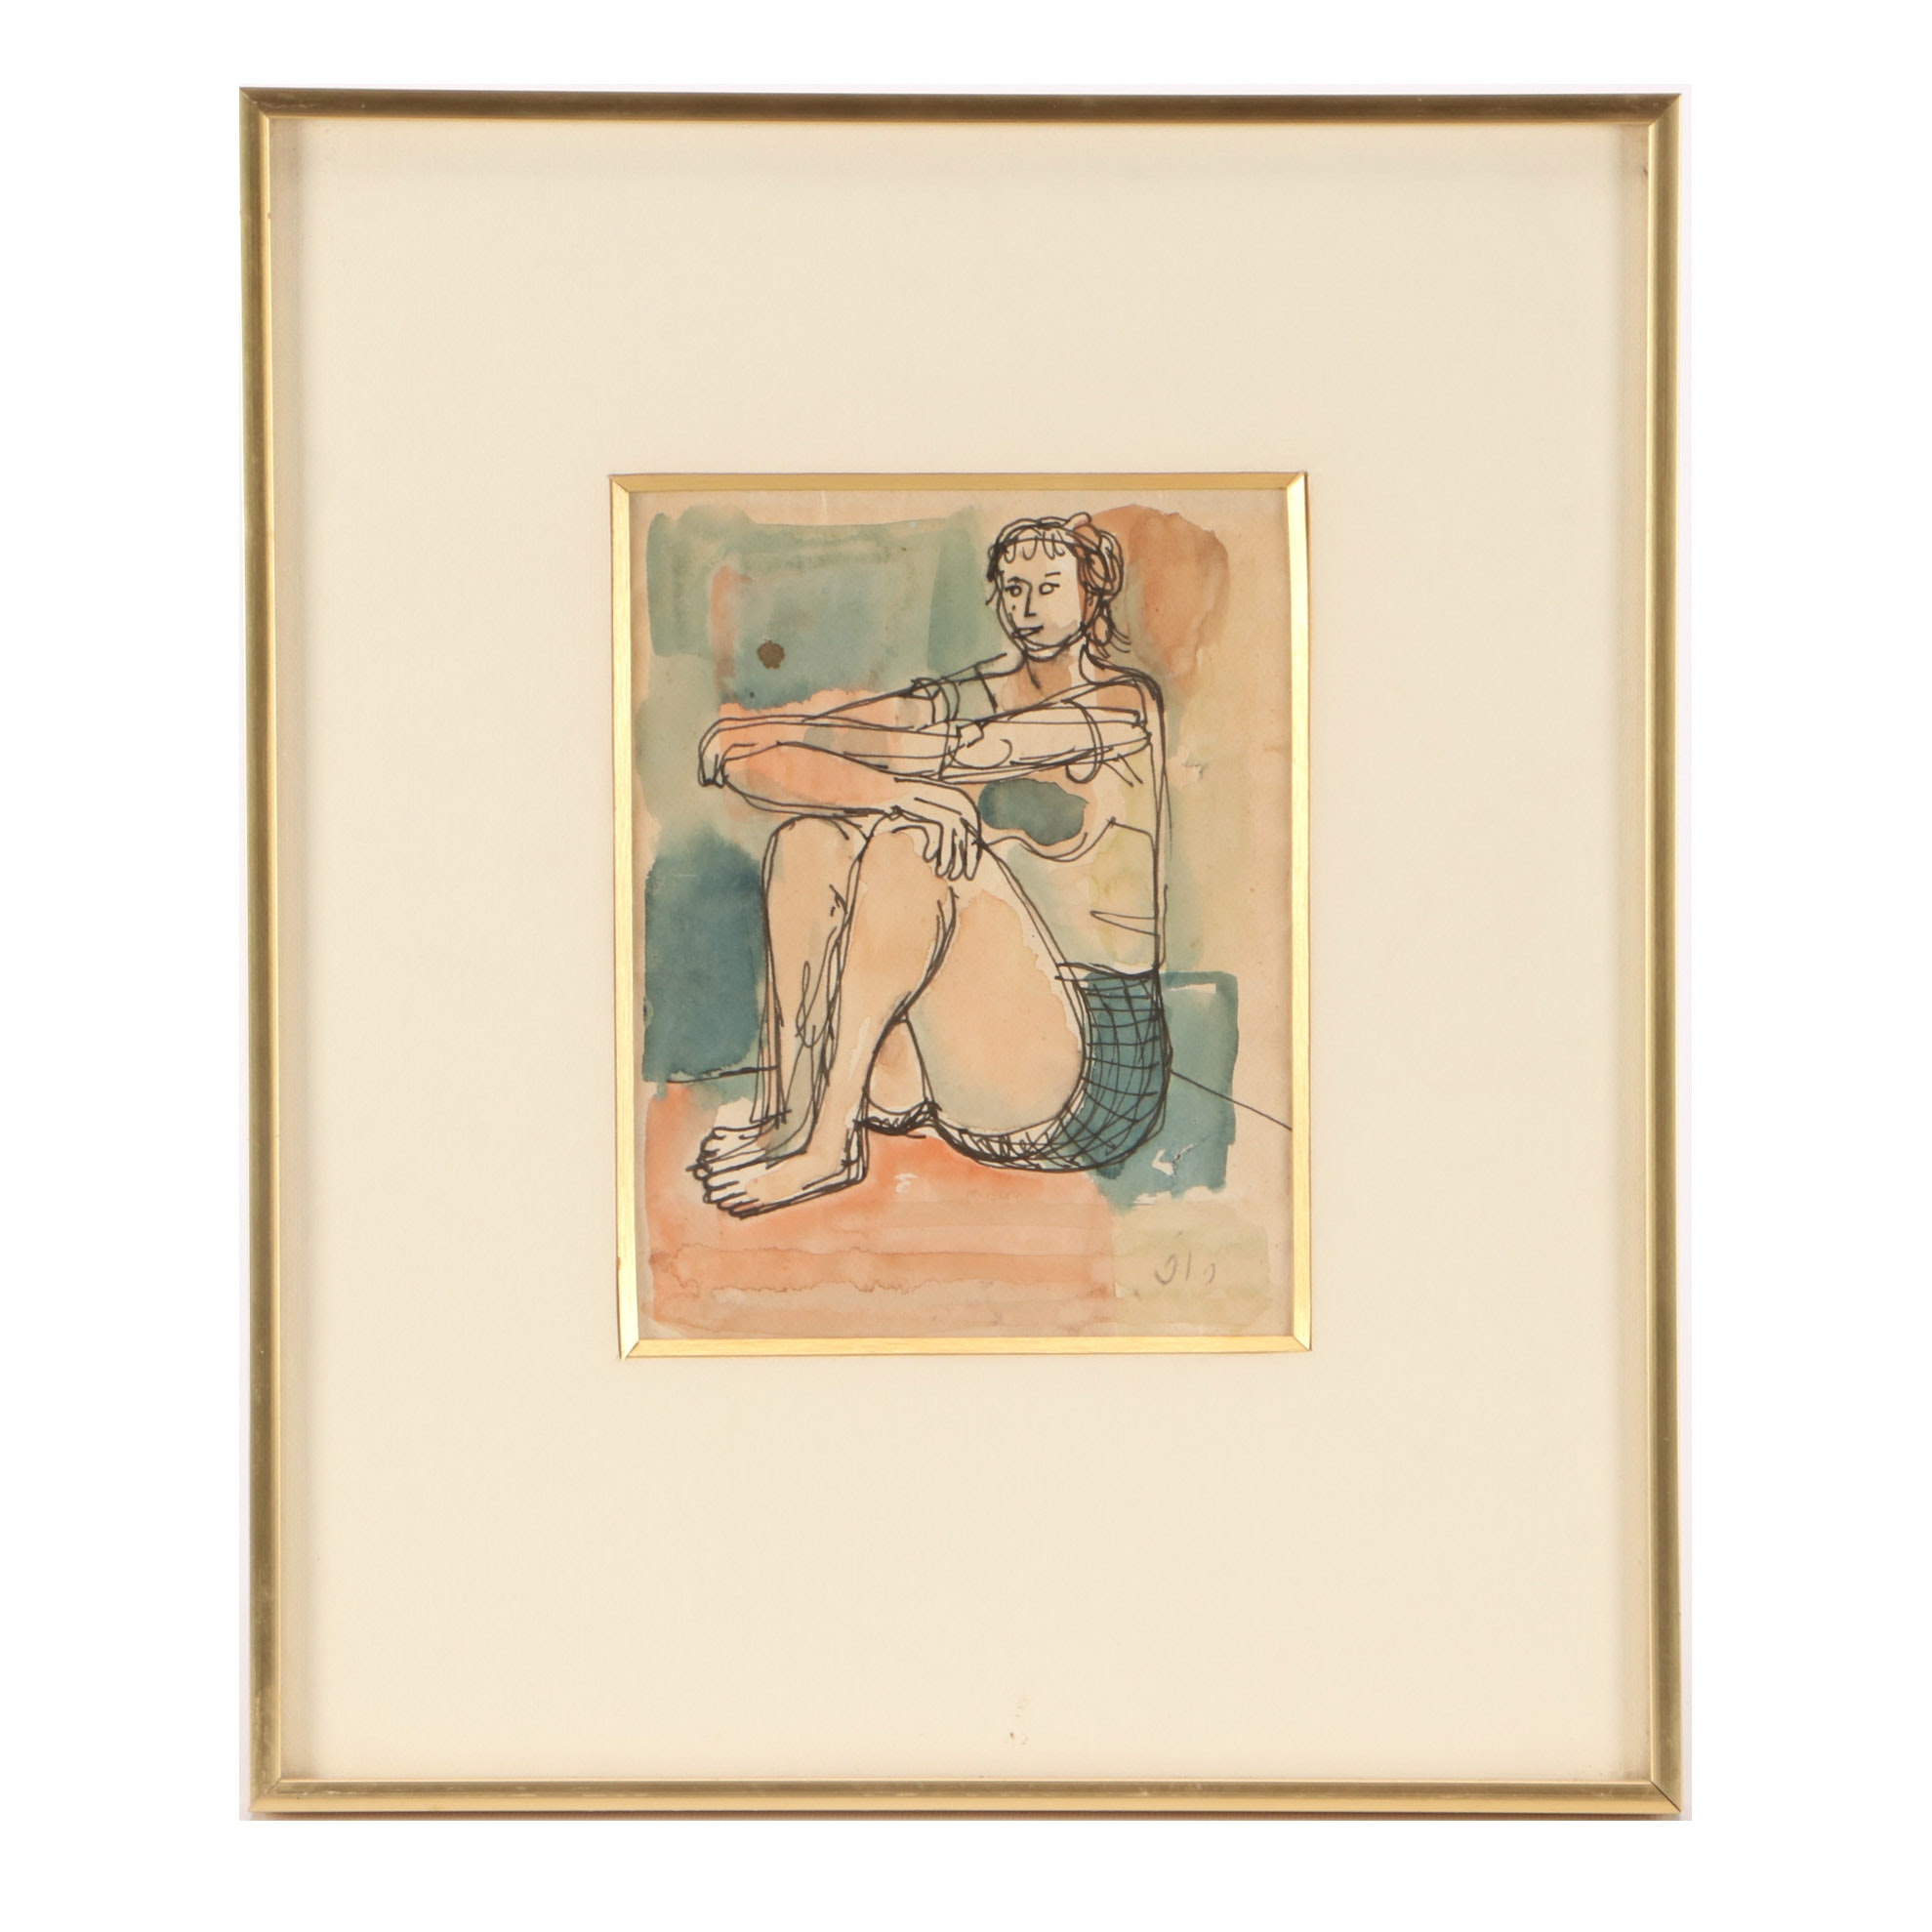 Leo Roth Vintage Ink and Watercolor Painting of a Figure